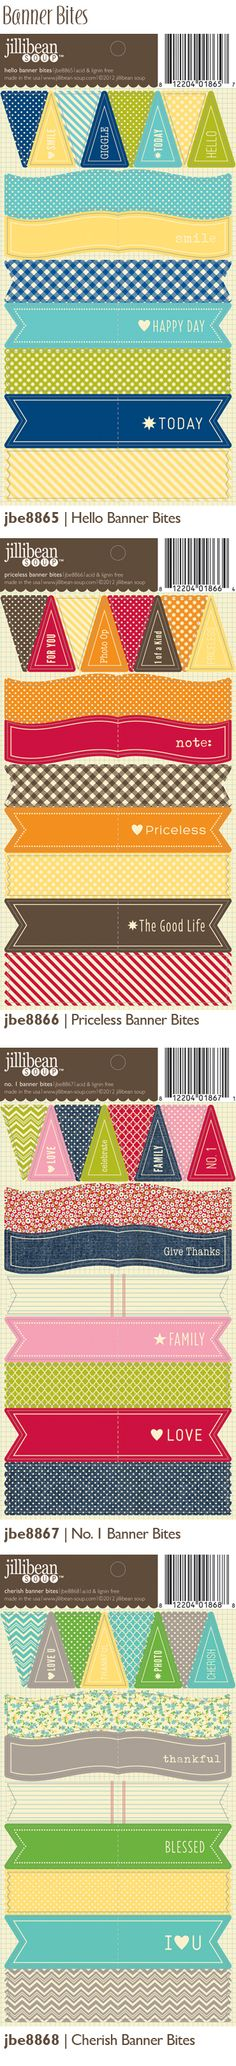 Jillibean Soup! Banner Bites!  How cute are these!  Love the colors! BannerBites_Summer2012_BlogPreview